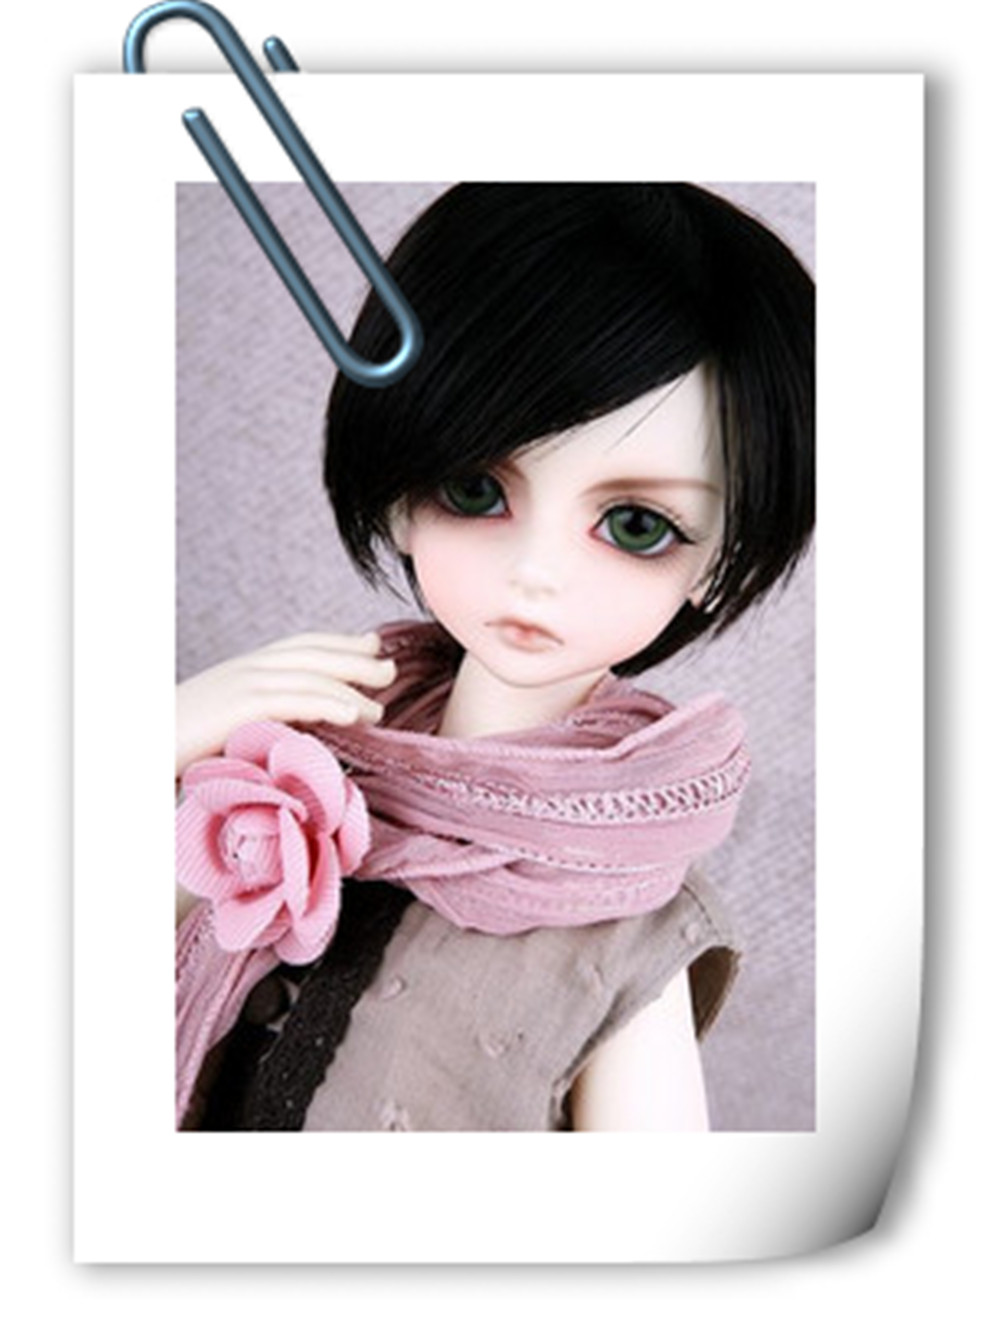 stenzhorn(stenzhorn) 1/4 BJD doll/dod/ai/luts/Kid Delf bory / 1/4 BJD doll boy version of eyes